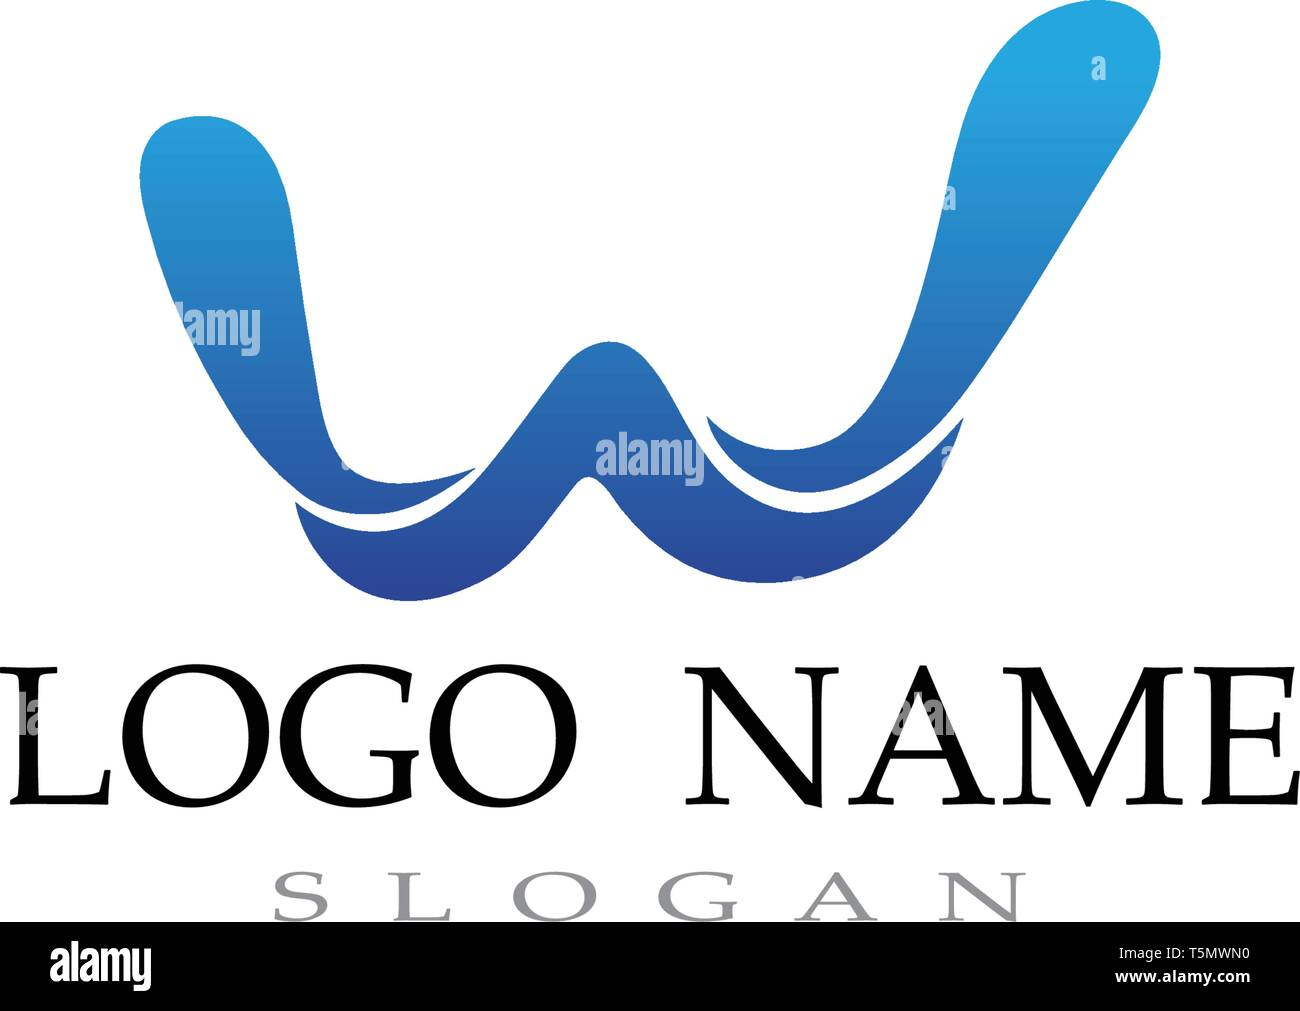 W logo and symbol business vector - Stock Image